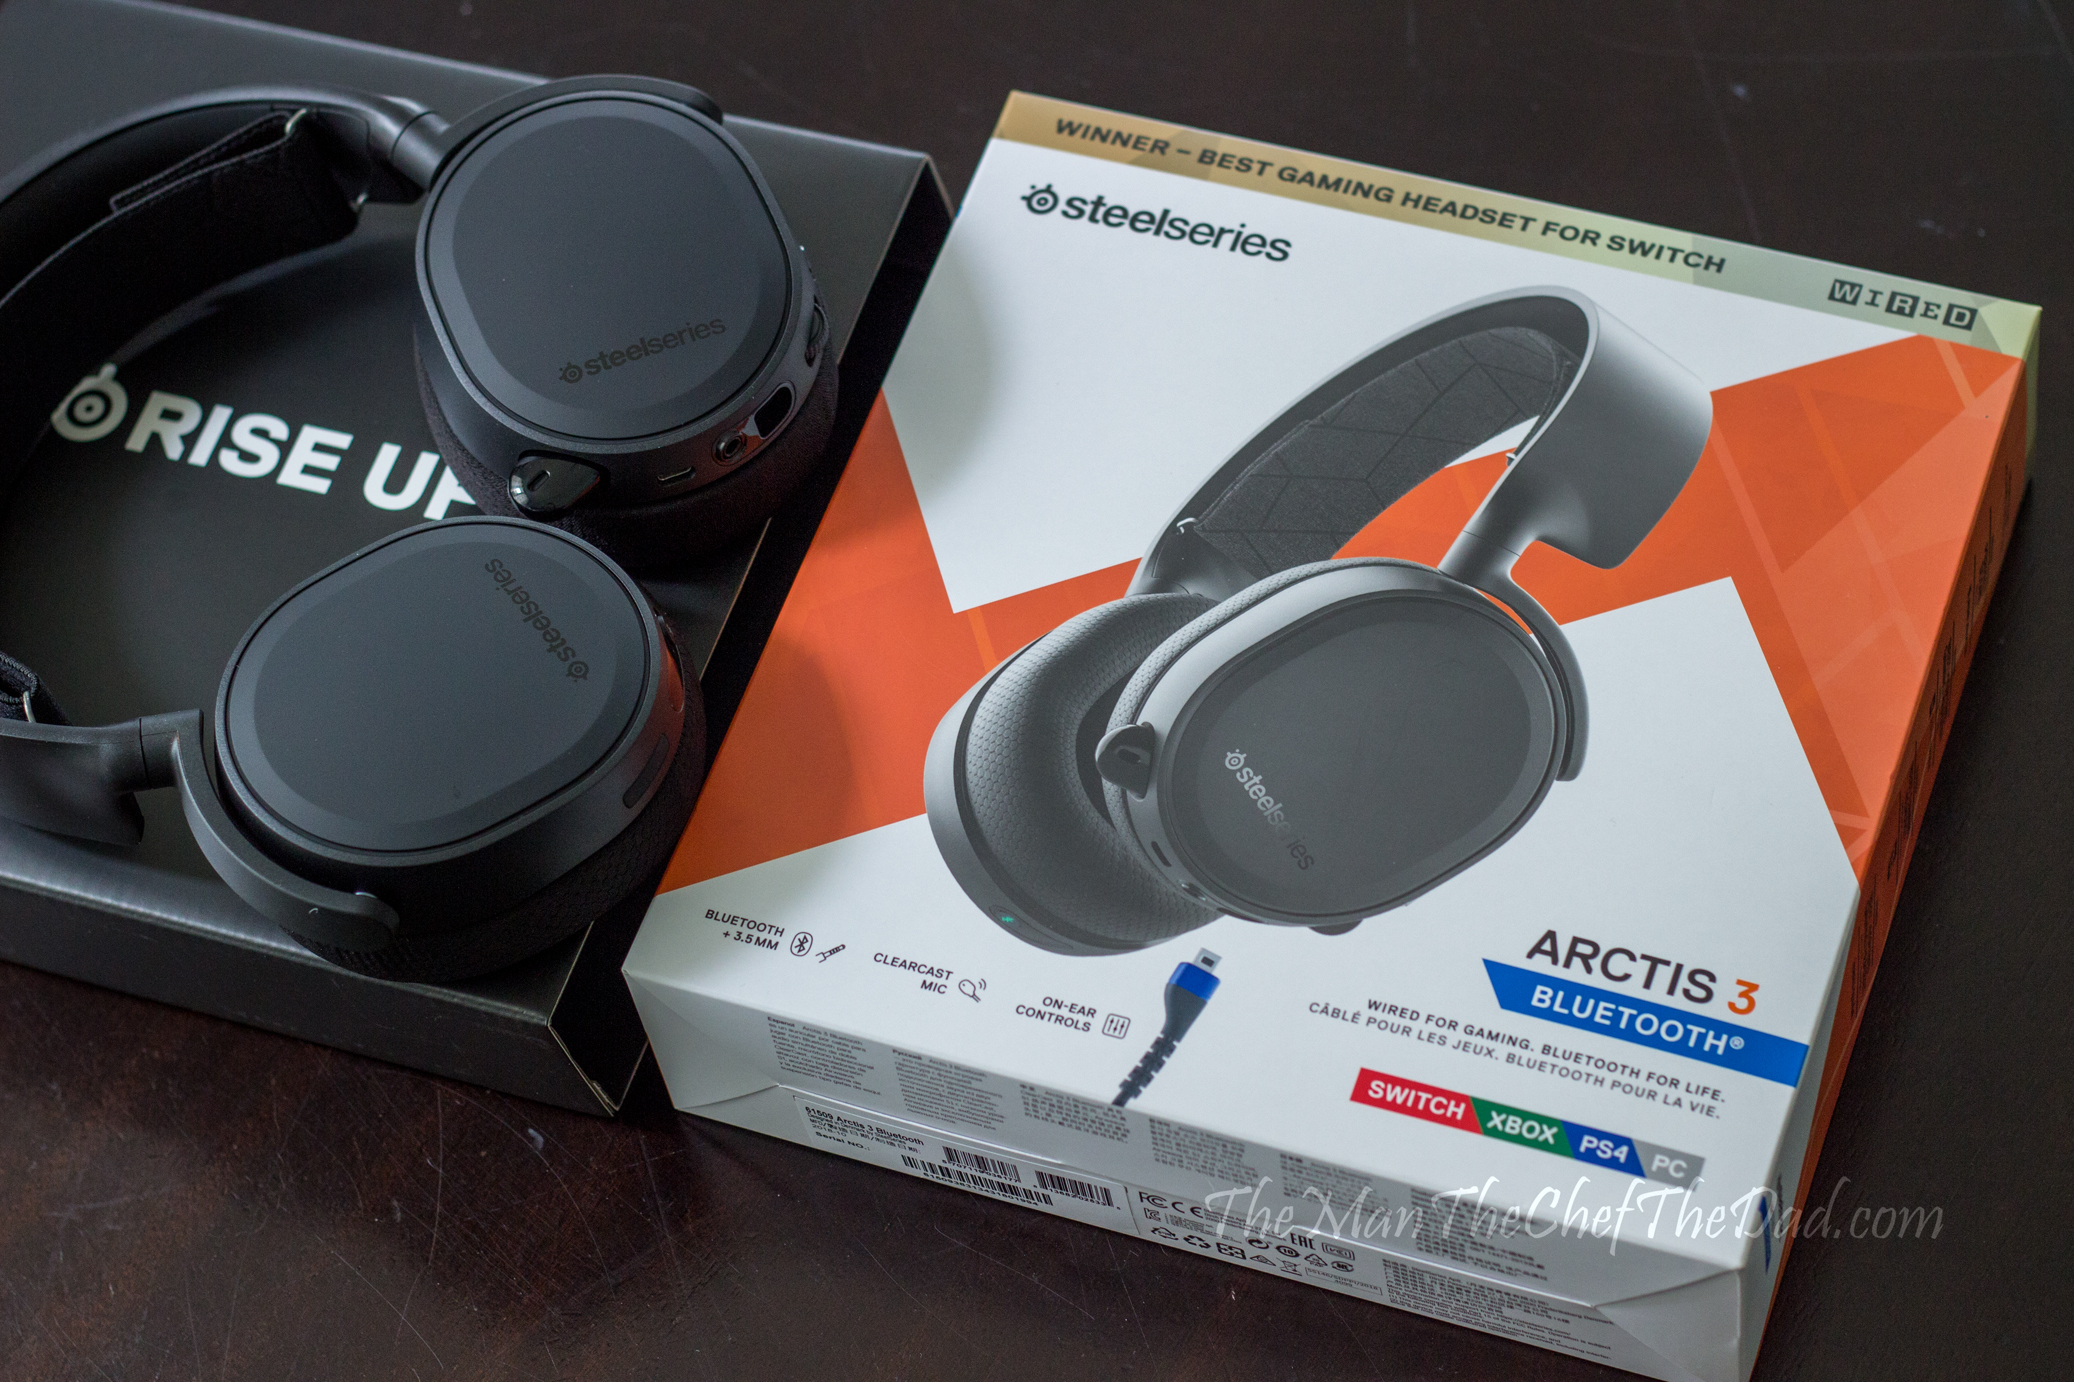 Review Steelseries Arctis 3 Bluetooth Headset Man Chef Dad